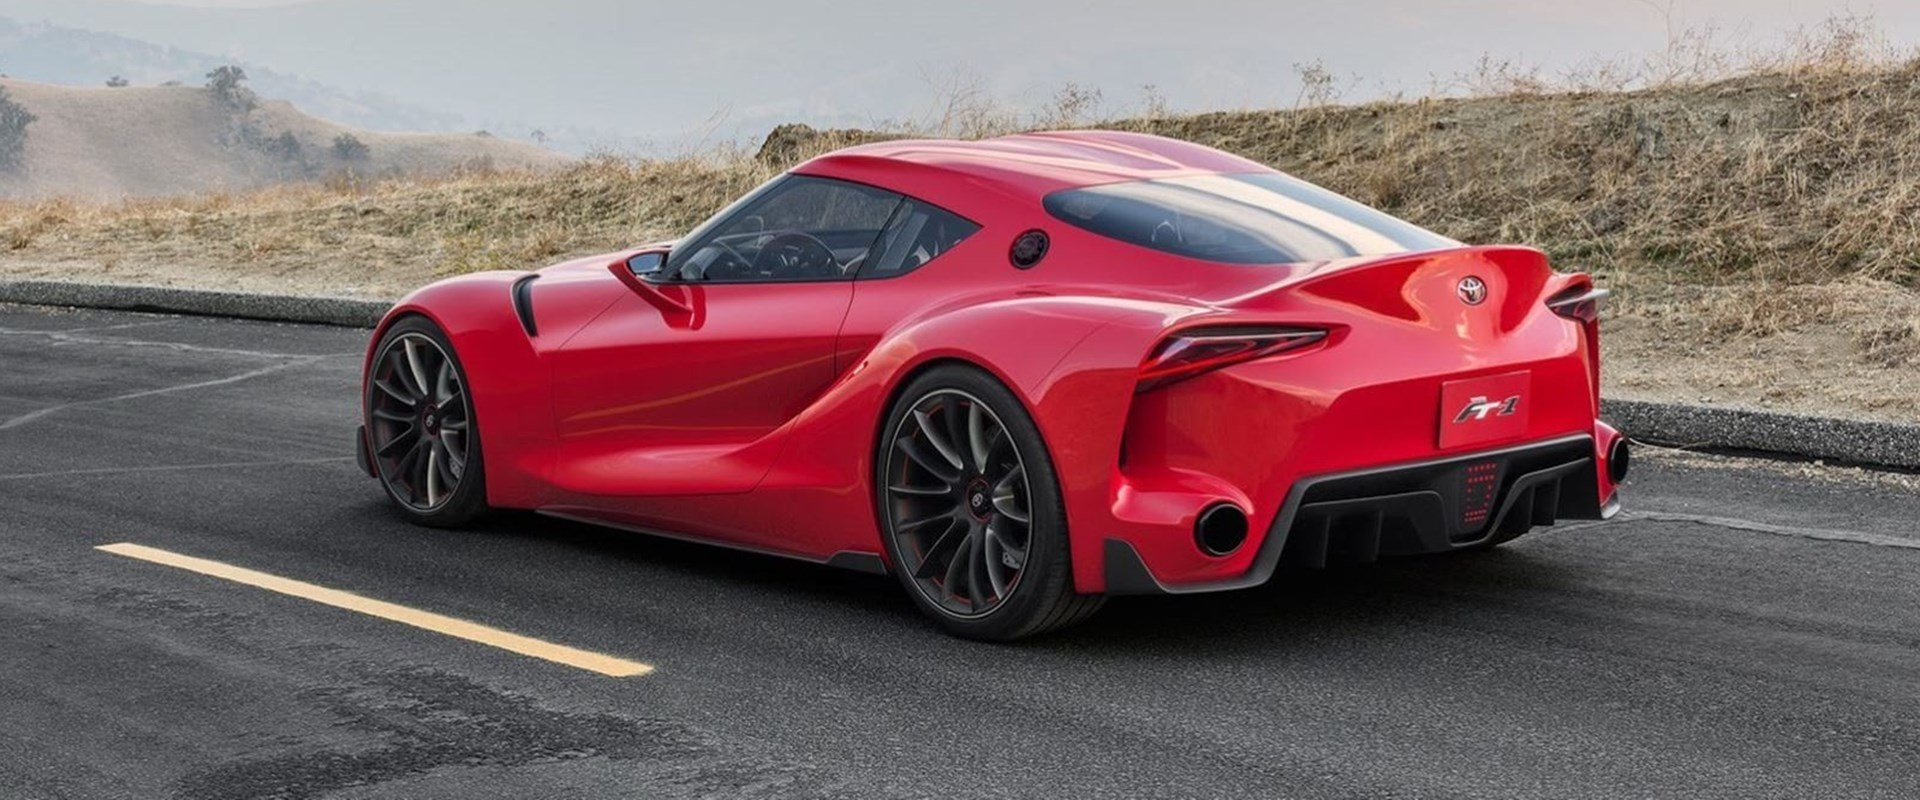 5 Features The Upcoming Toyota Supra Must Have - CarBuzz